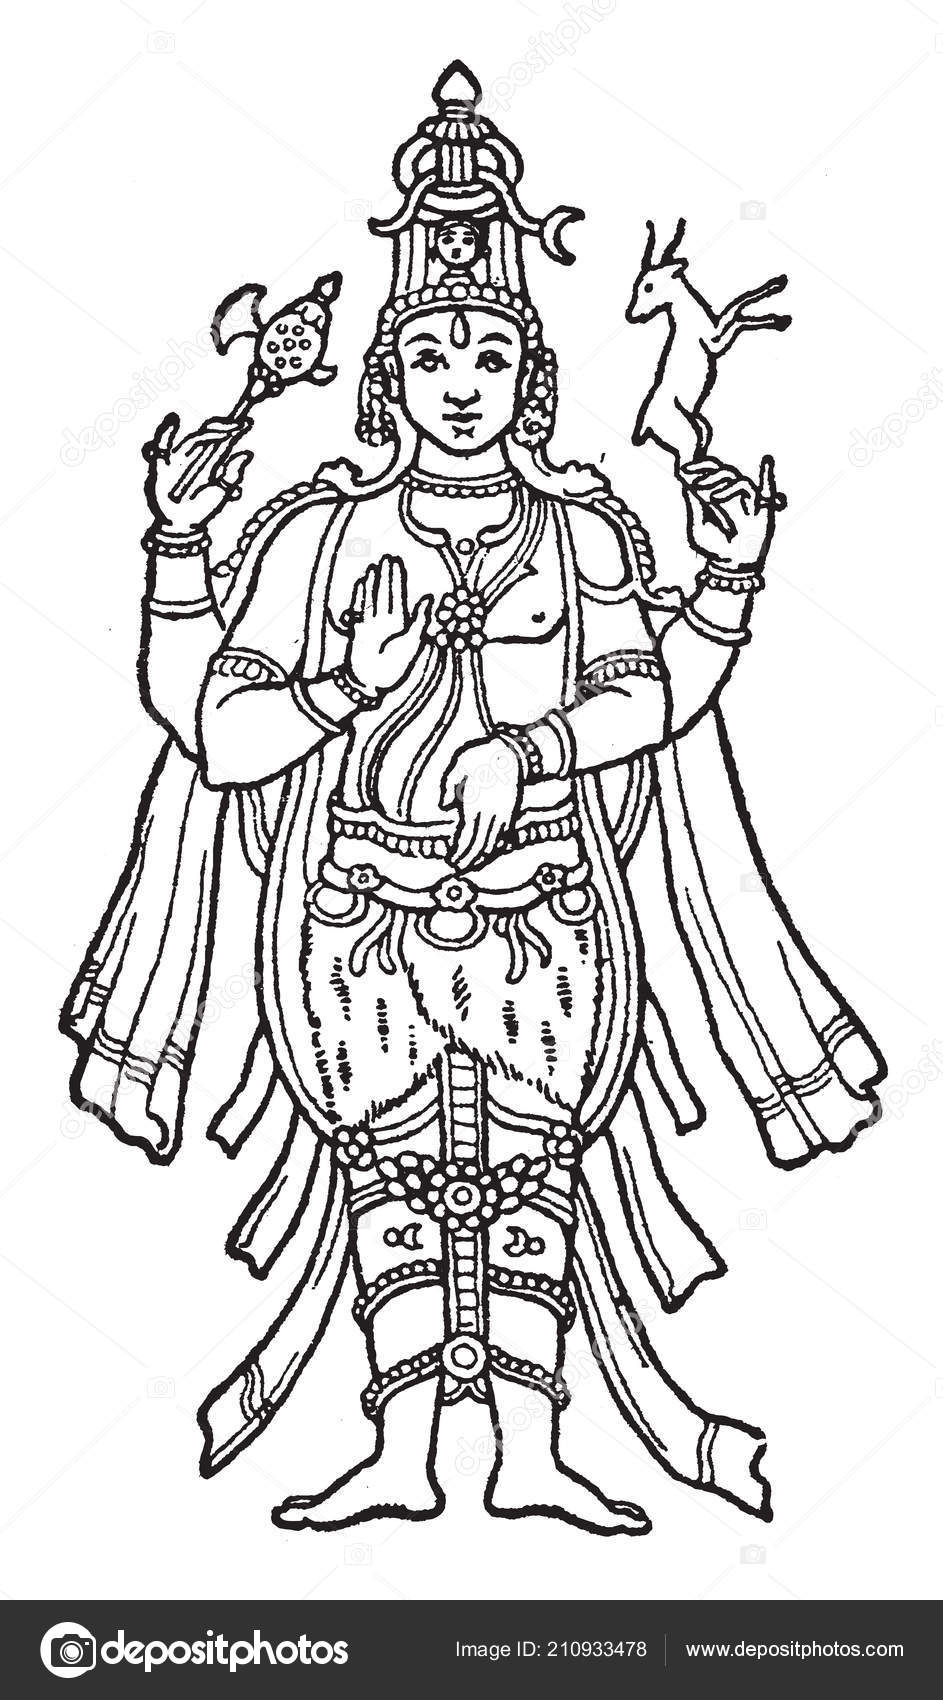 Image lord shiva important place hinduism vintage line drawing engraving stock vector